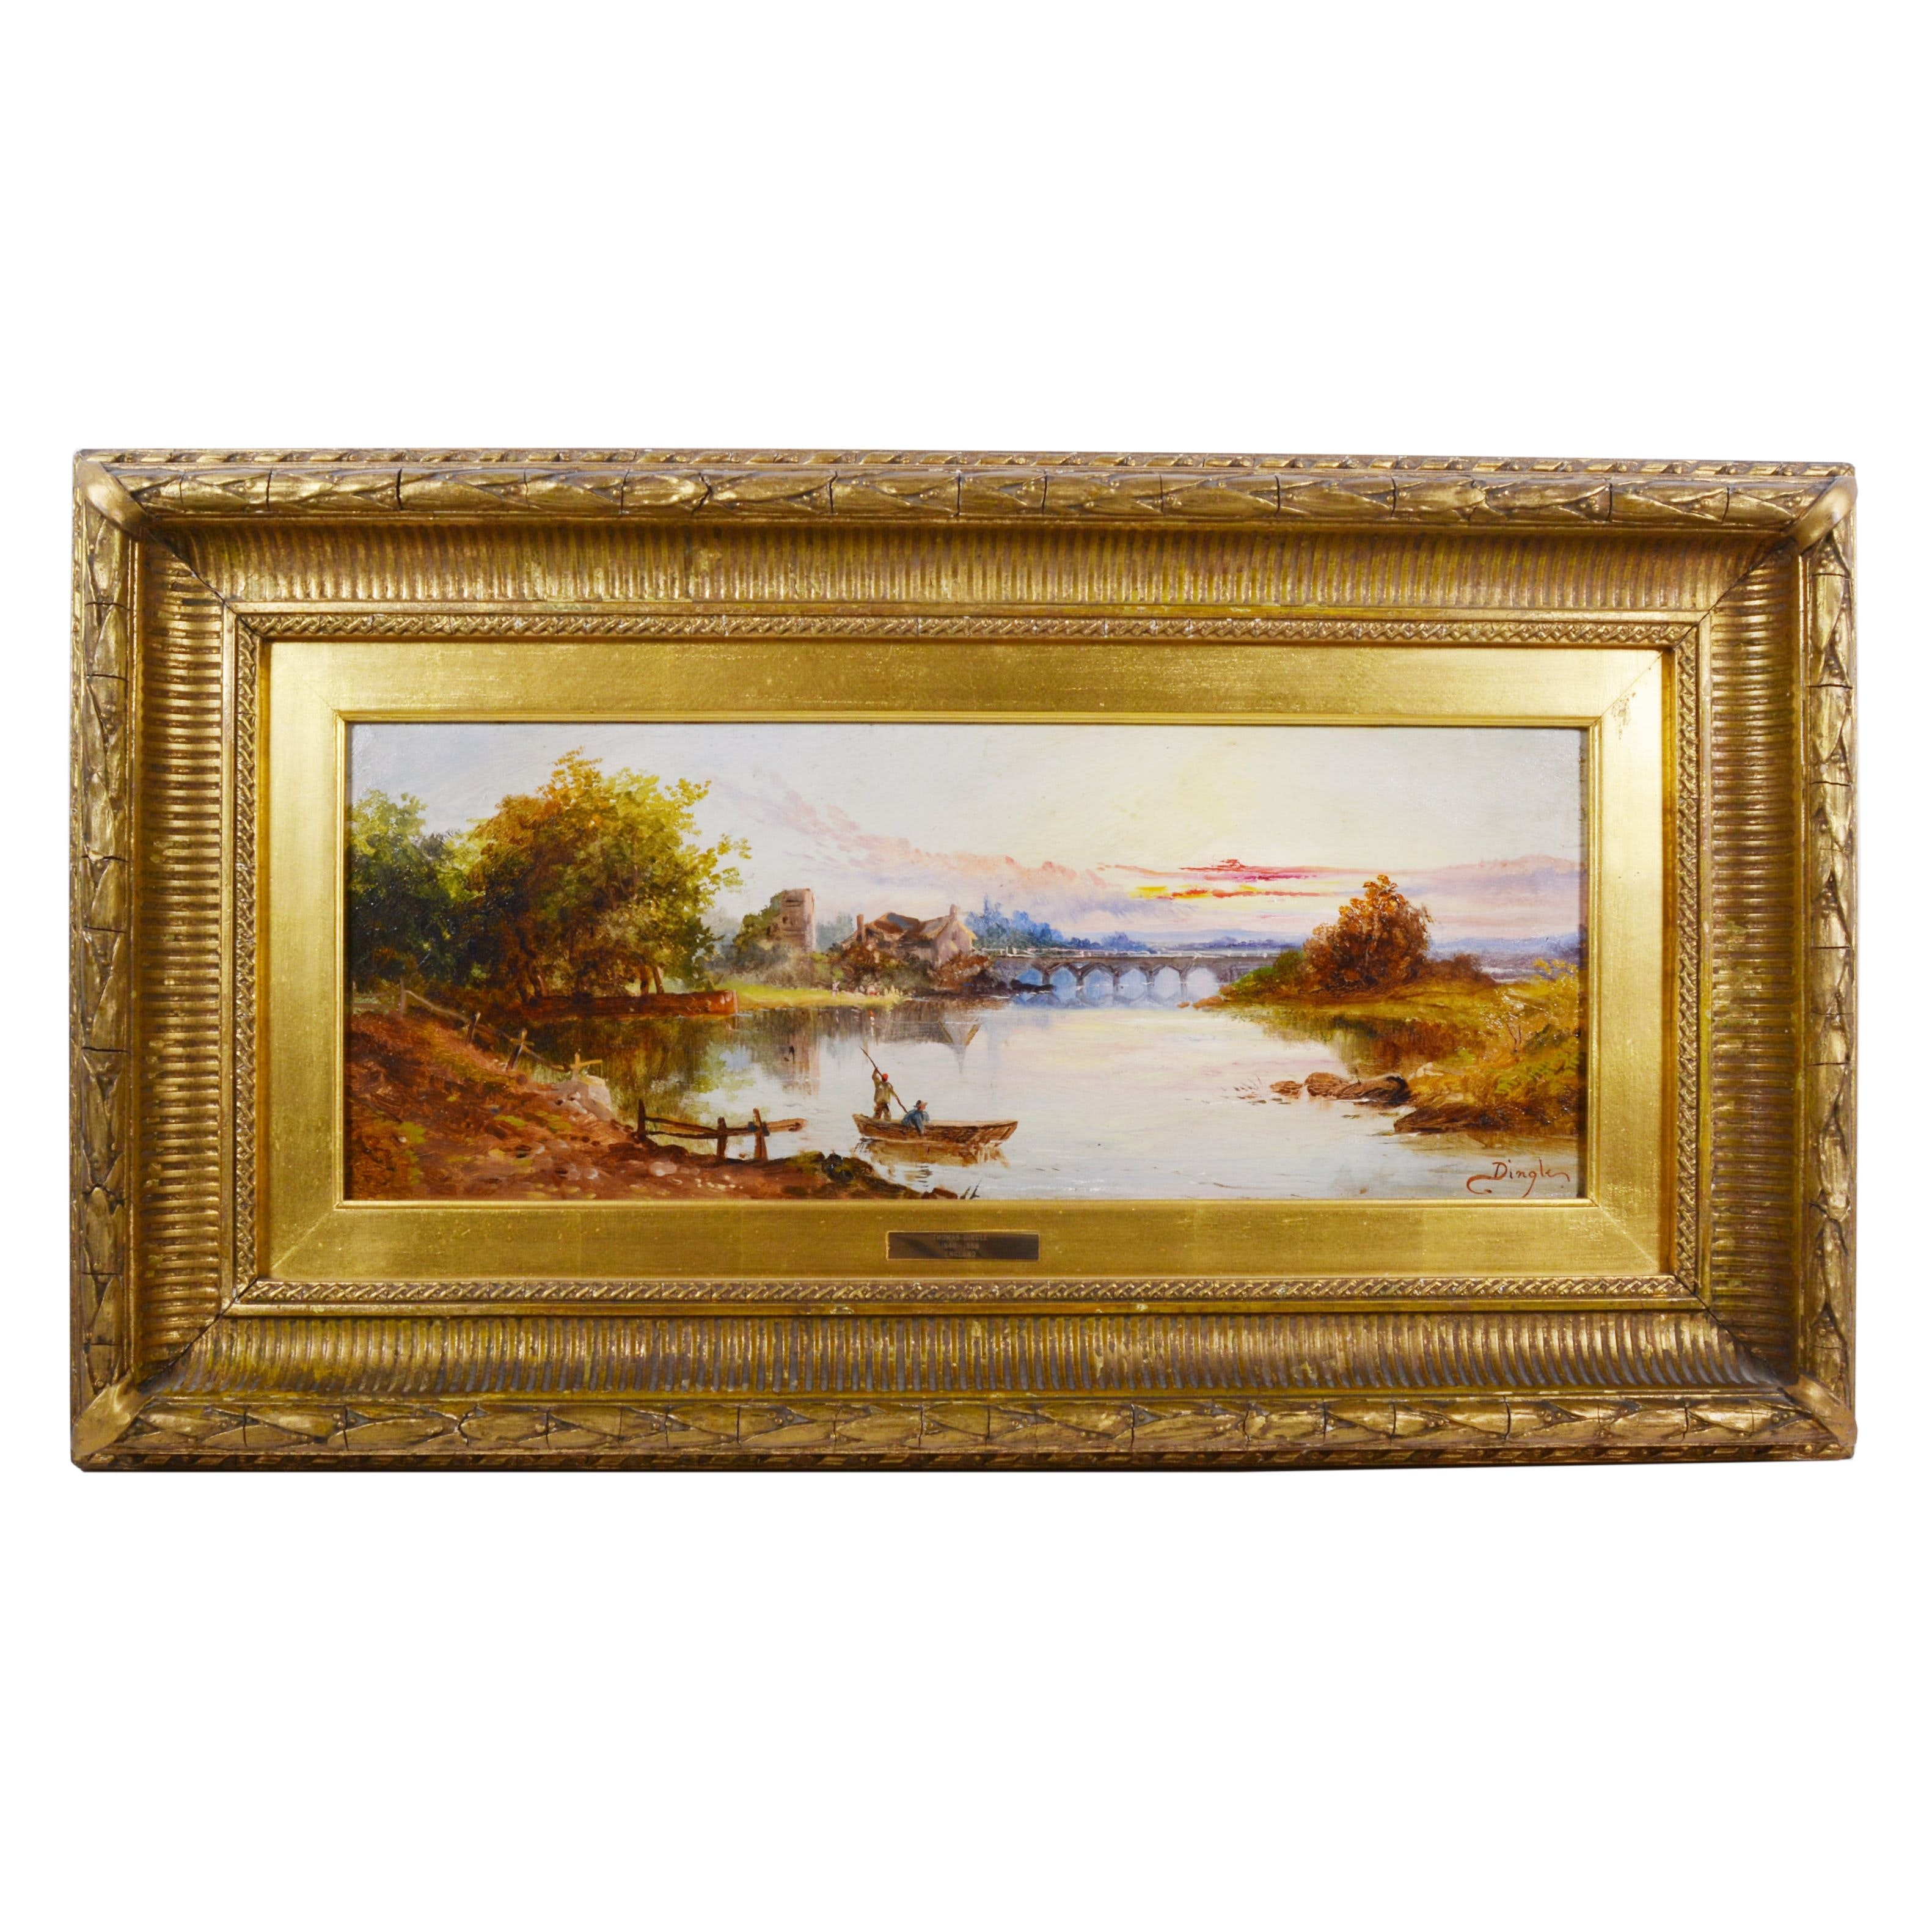 Thomas Dingle Oil Painting of Lake at Sunset Landscape, 19th Century